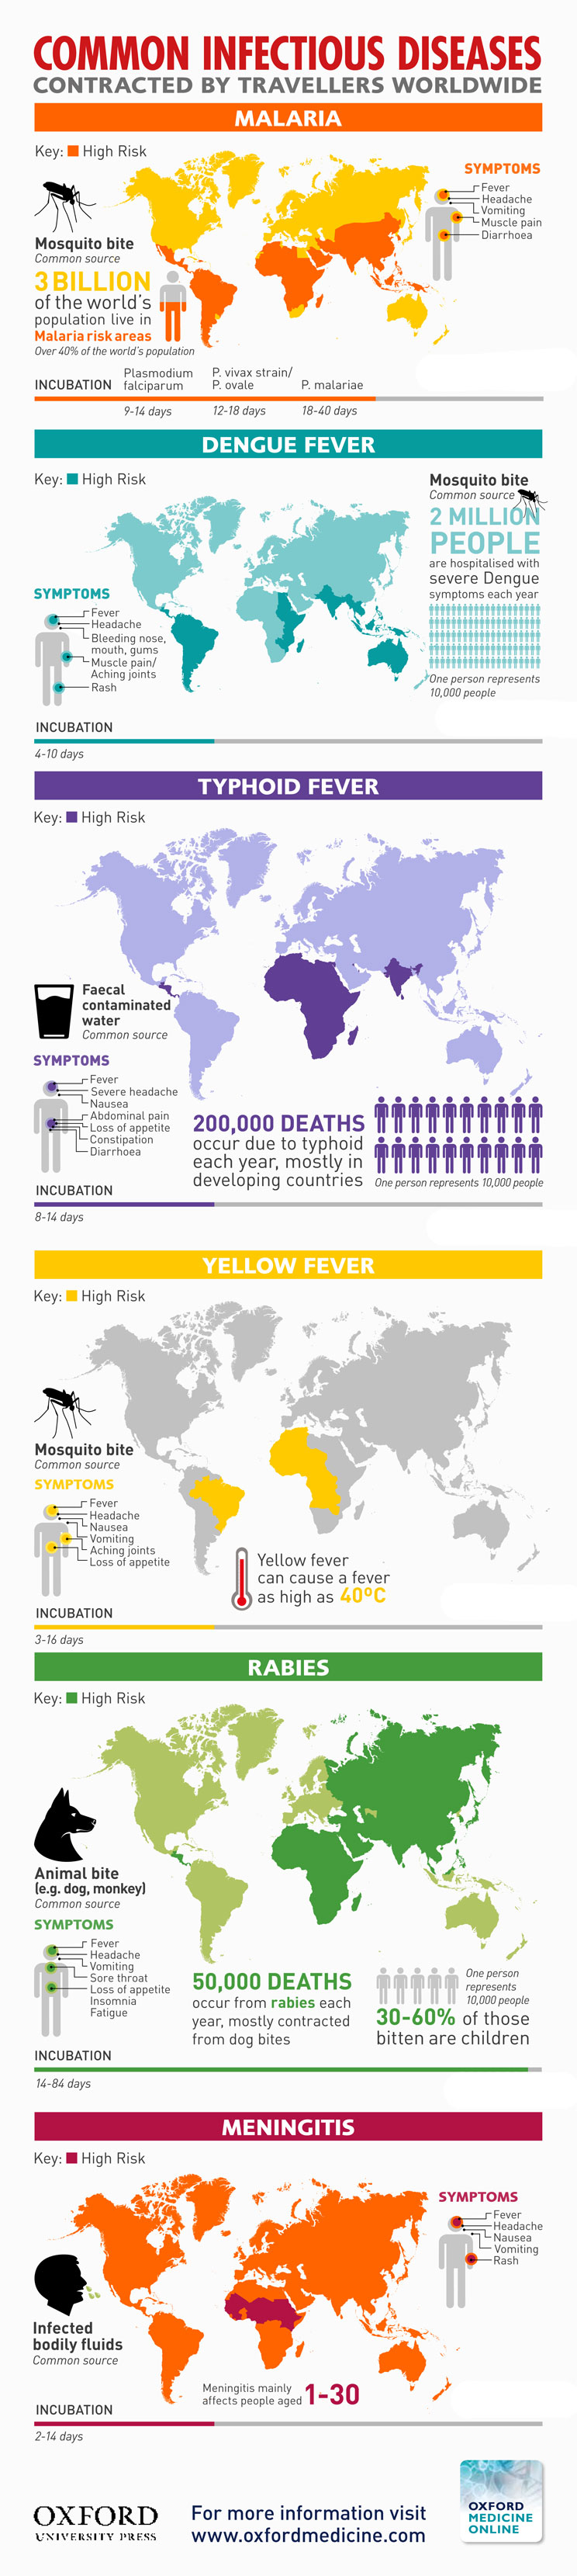 744-infectious-diseases-infographic